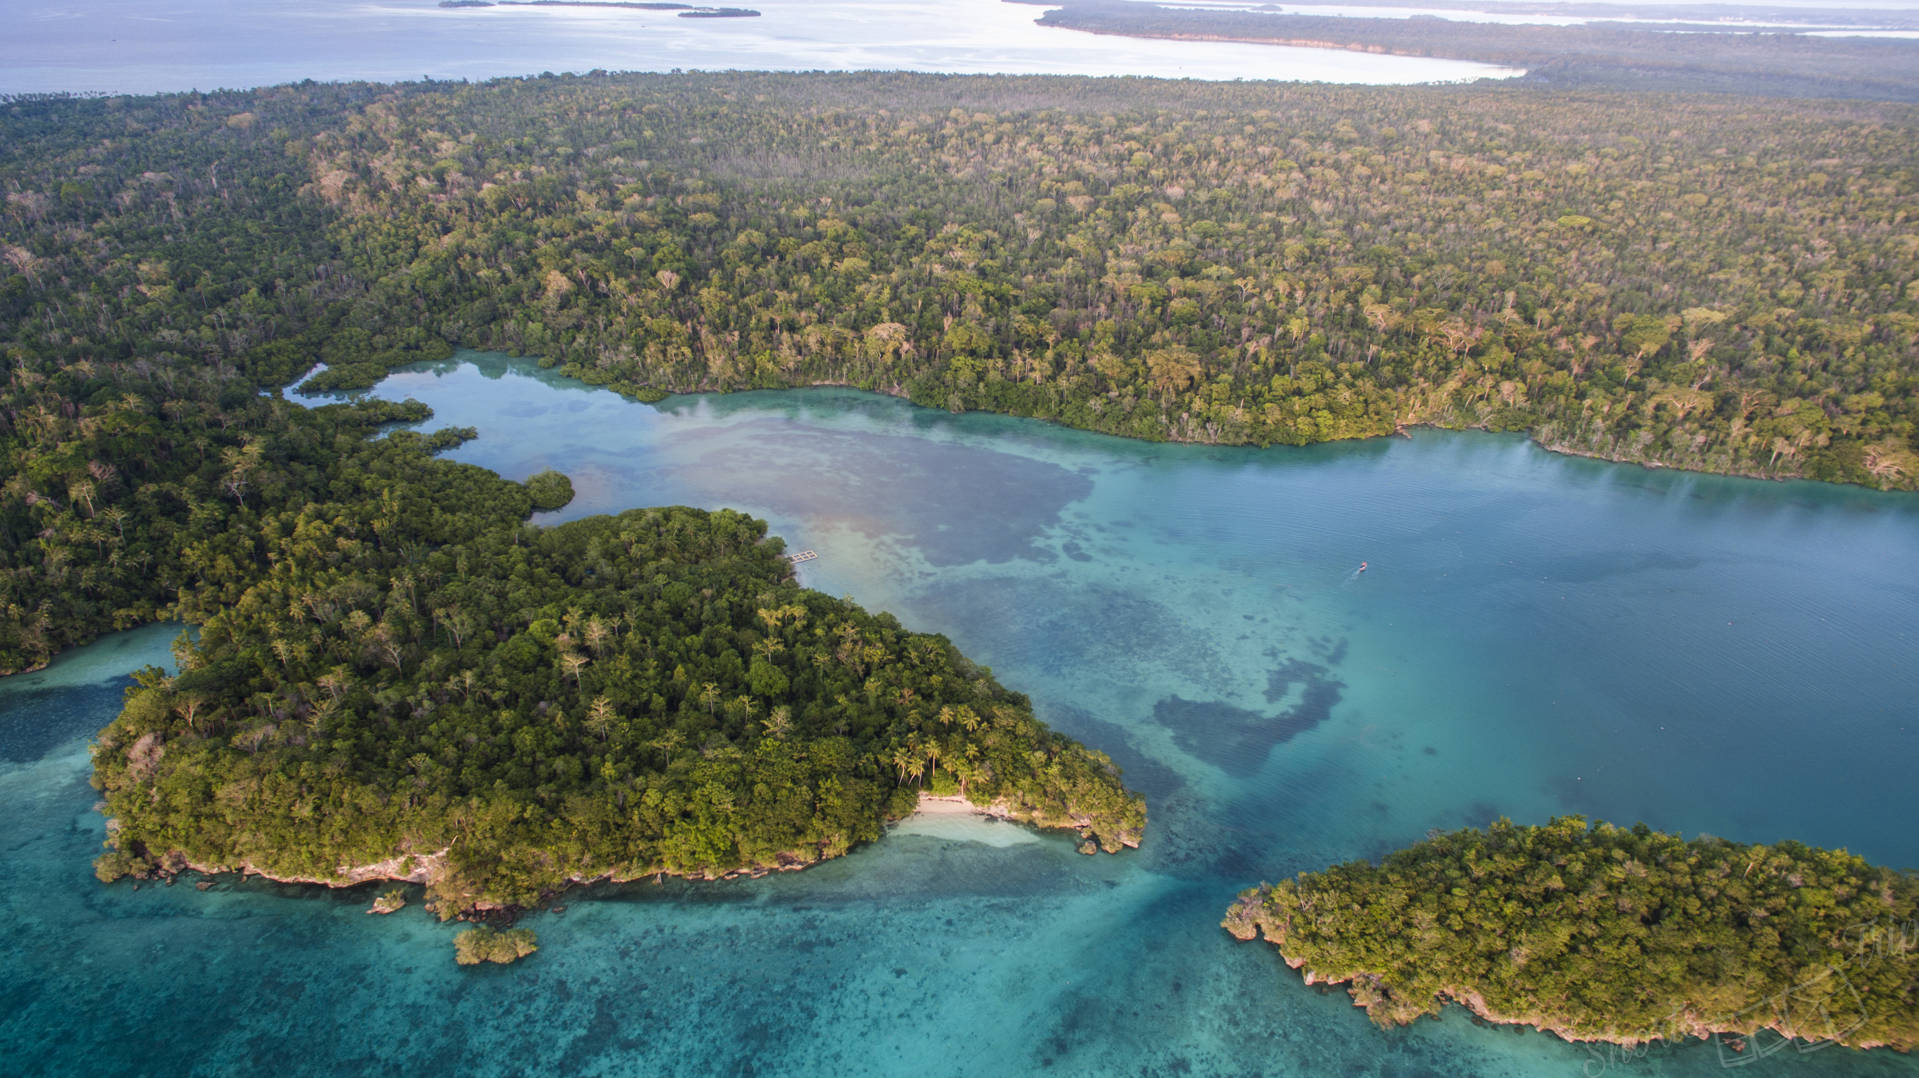 kei islands, kei islands sunset, kei islands lagoon, kei islands drone, kei islands indonesia, kei indonesia, aerial kei islands, out of beaten path kei islands, best beach in indonesia, best beach ever